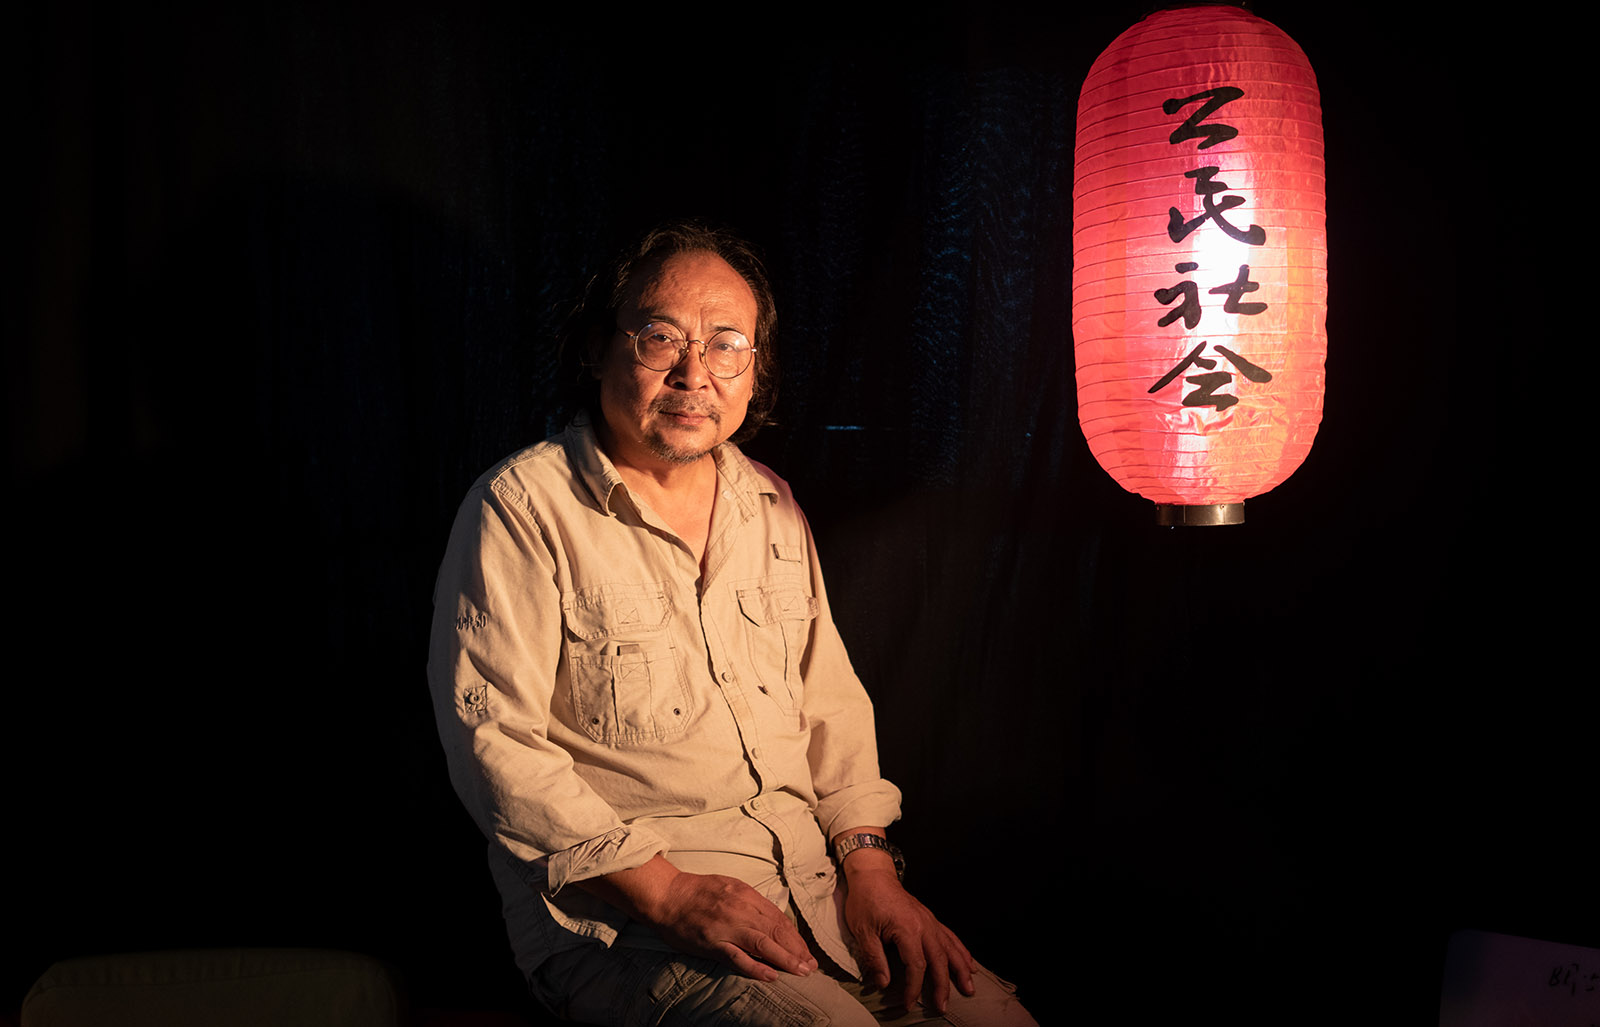 """Zhang Shihe, often known—as China's first citizen journalist—by his web name """"Tiger Temple"""""""